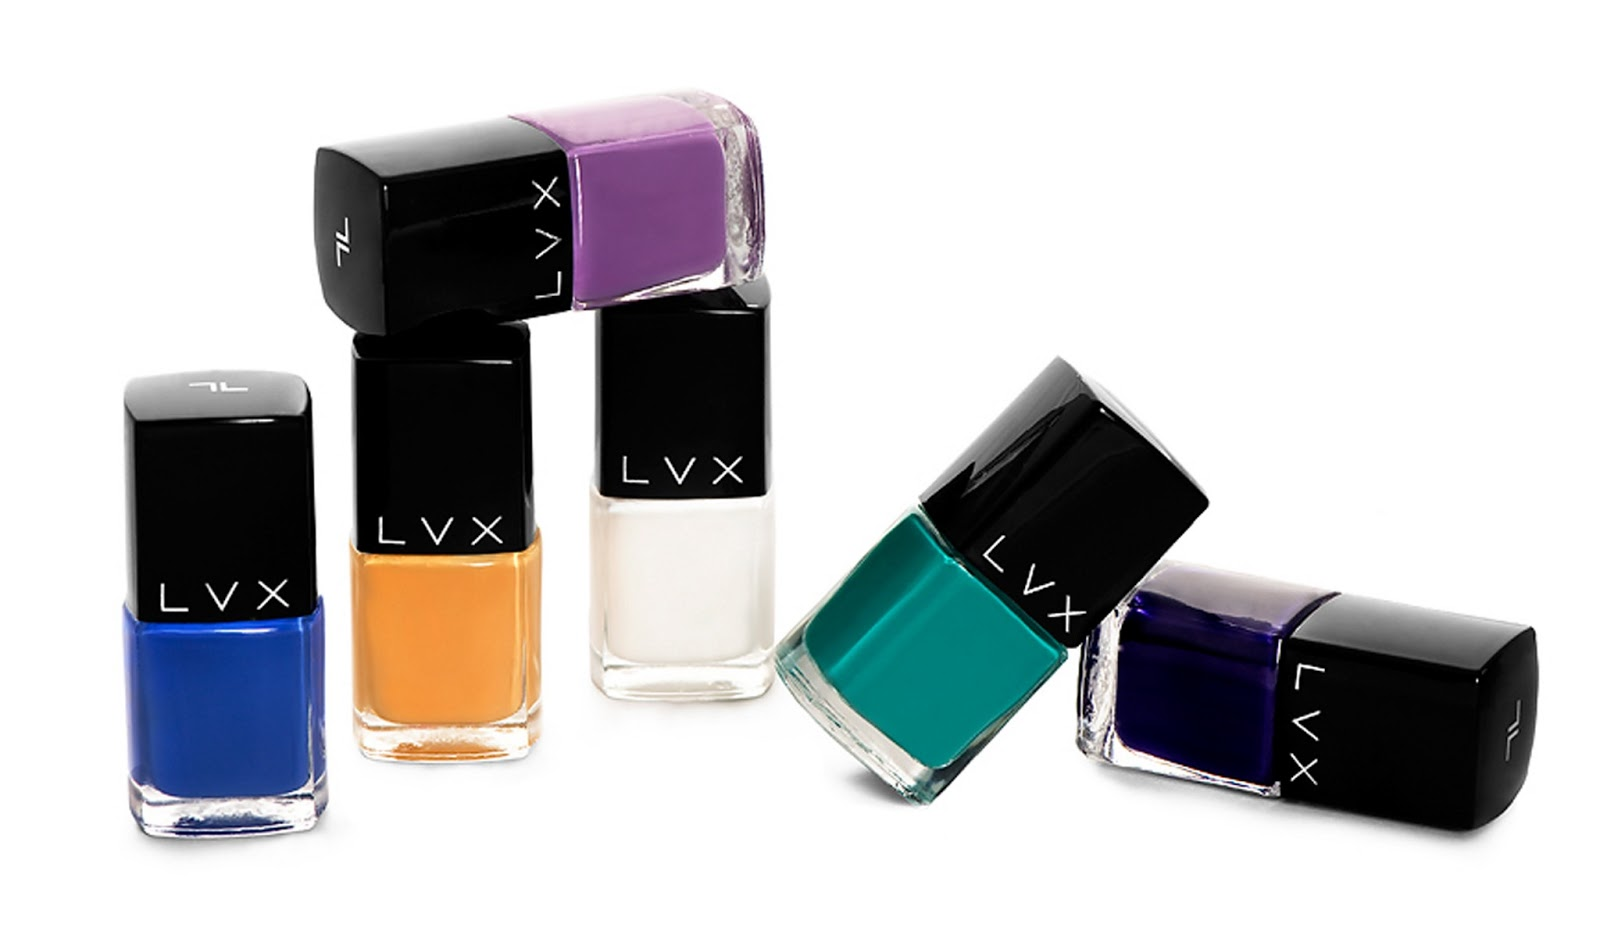 LVX Spring Collection Nail Polishes